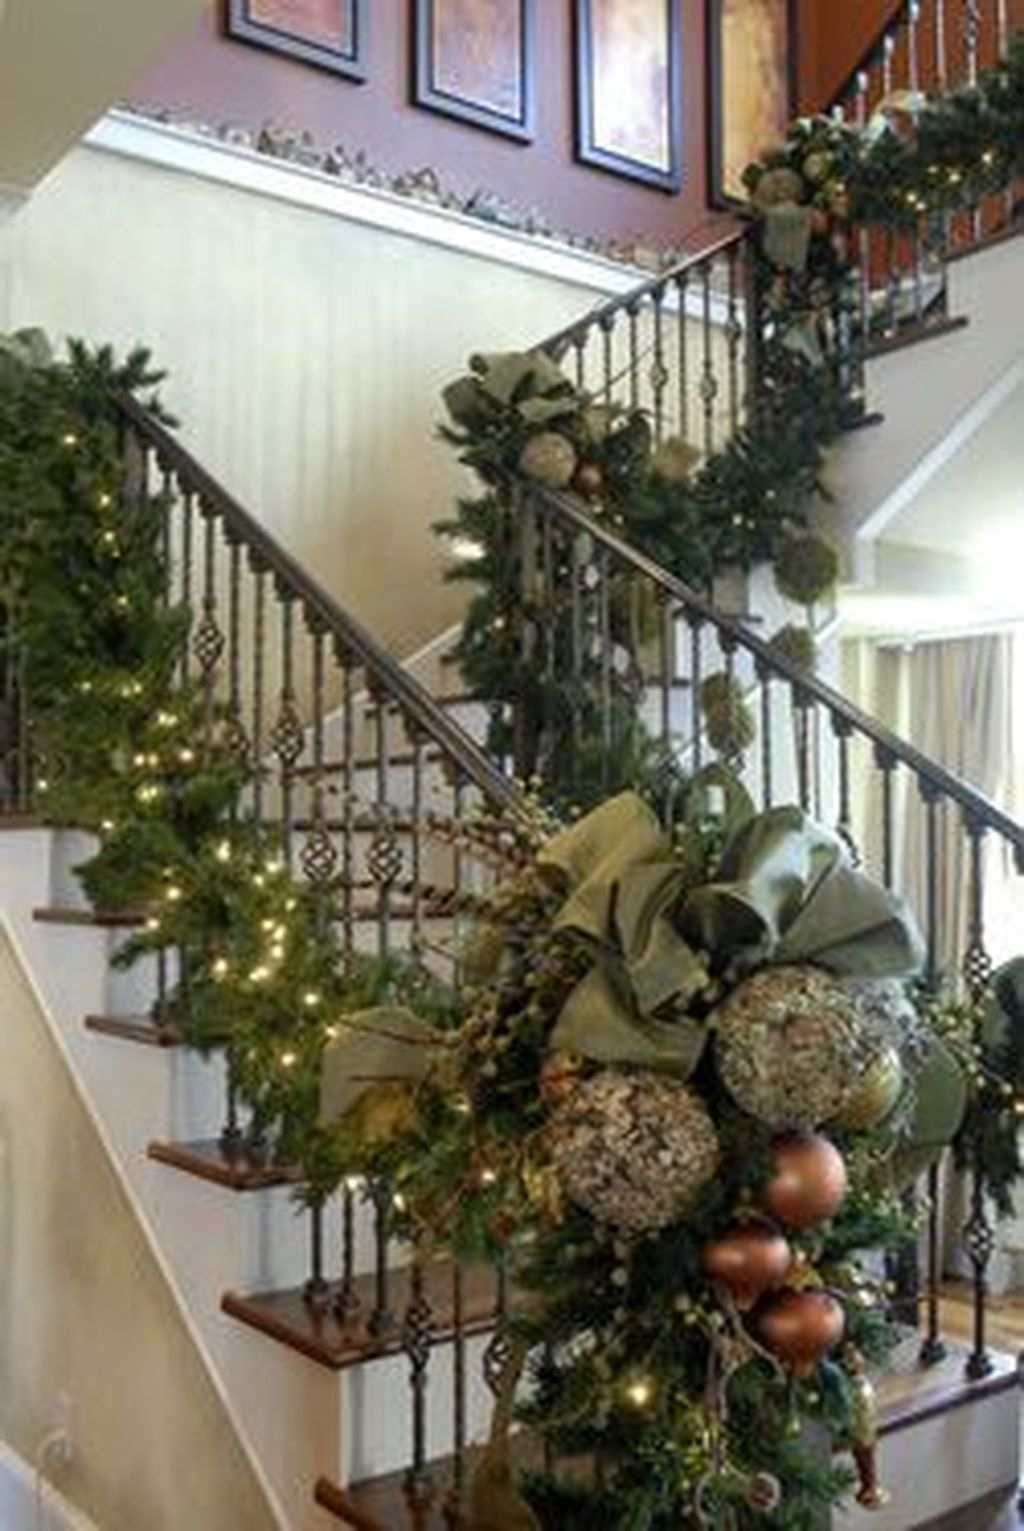 Charming Winter Staircase Design Ideas With Banister Ornaments To Try Asap 34